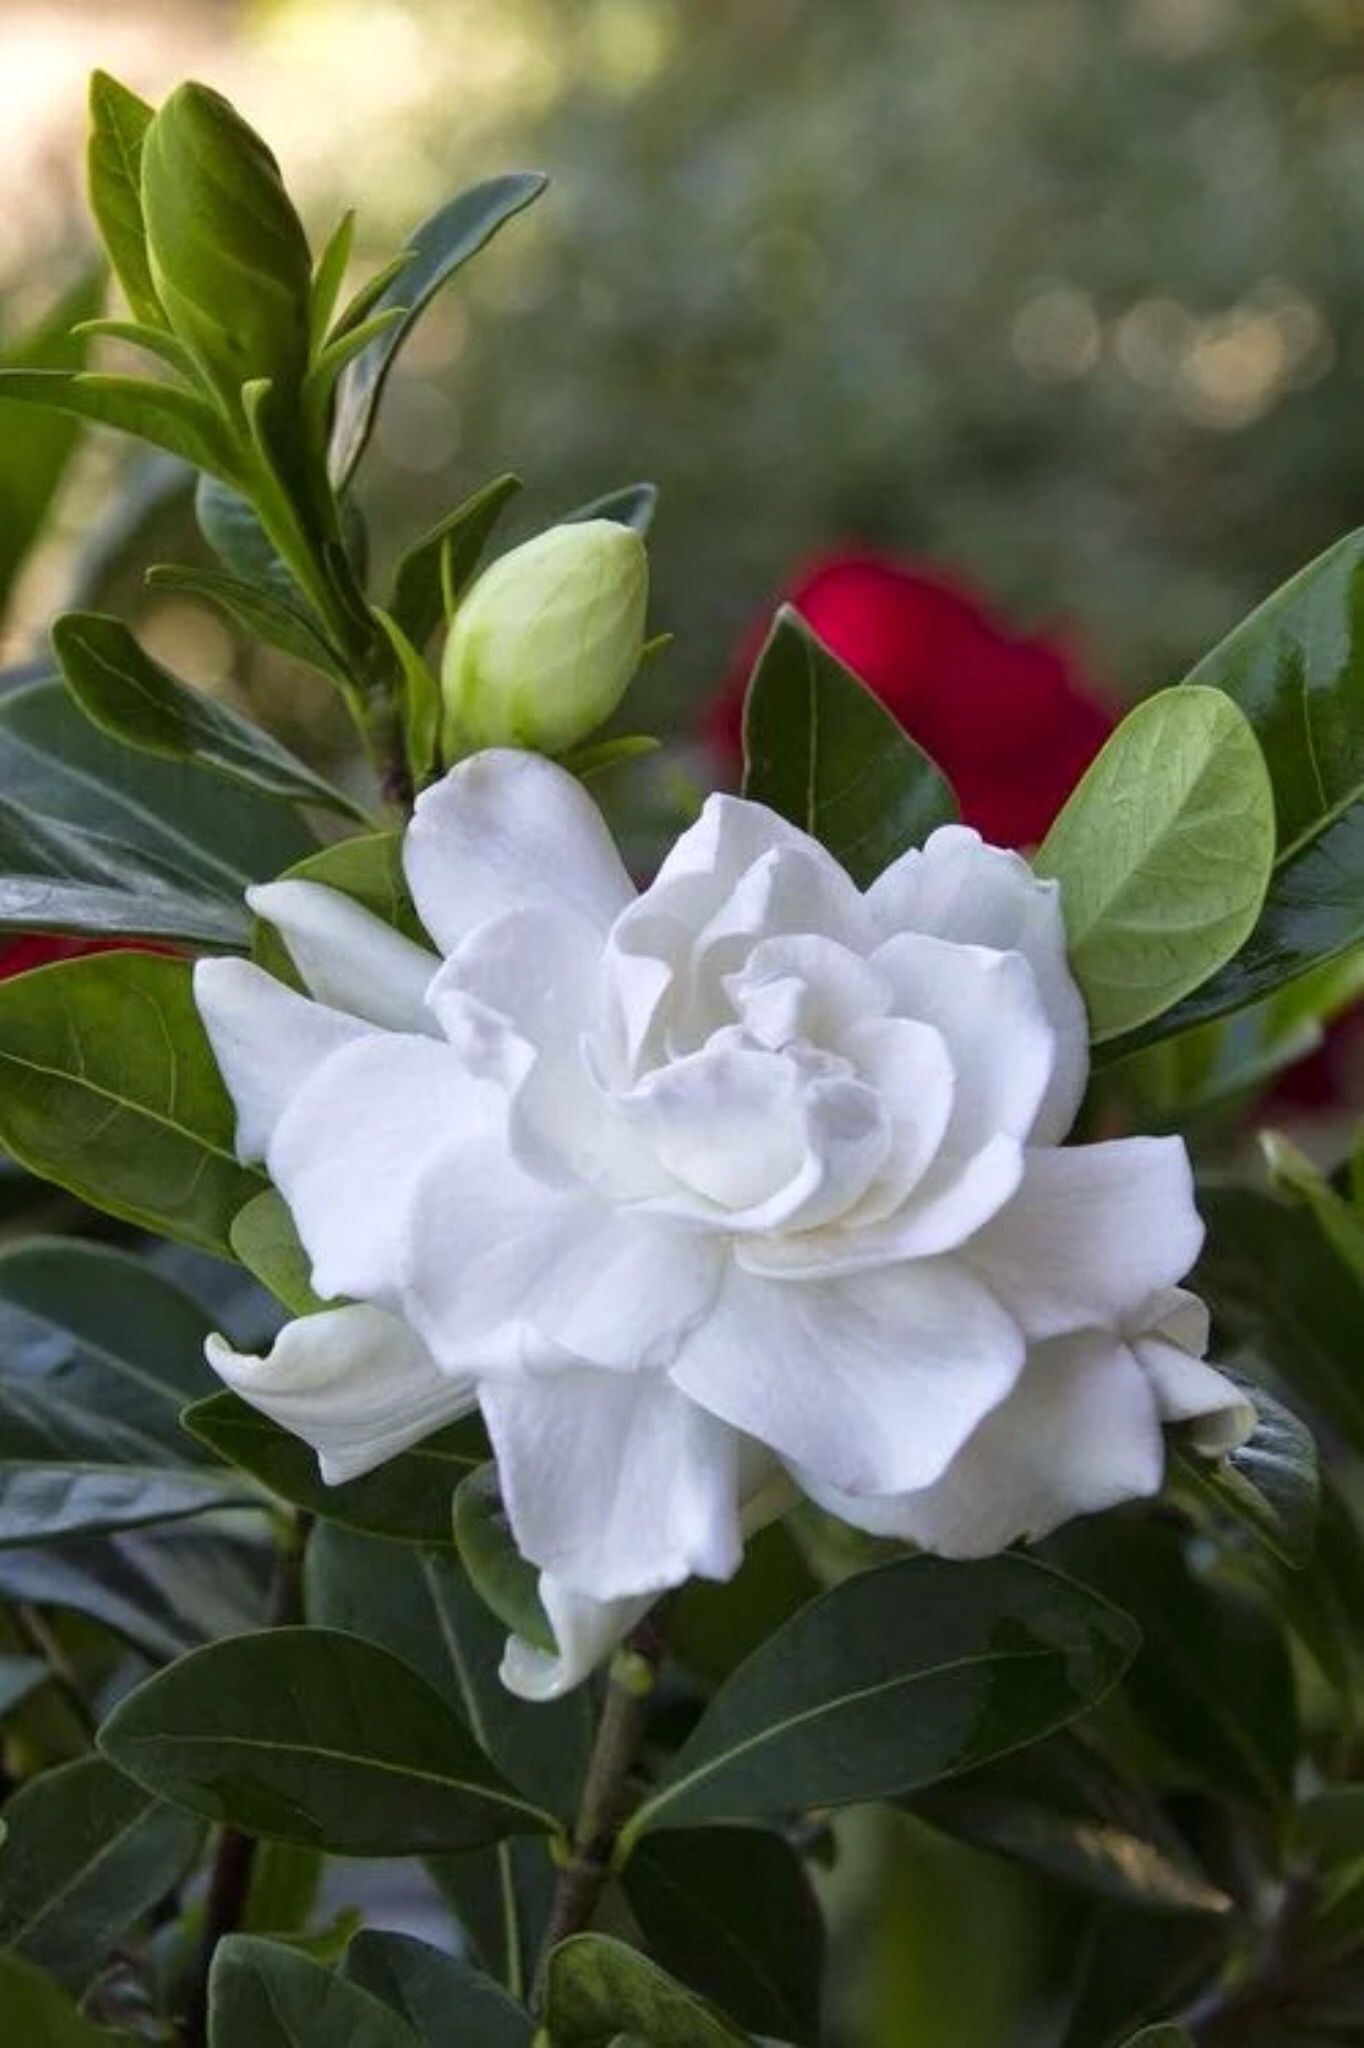 Gardenias Perfumed Essence Wafting On Summer Breezes 3 Amazing Flowers Pretty Flowers Beautiful Flowers